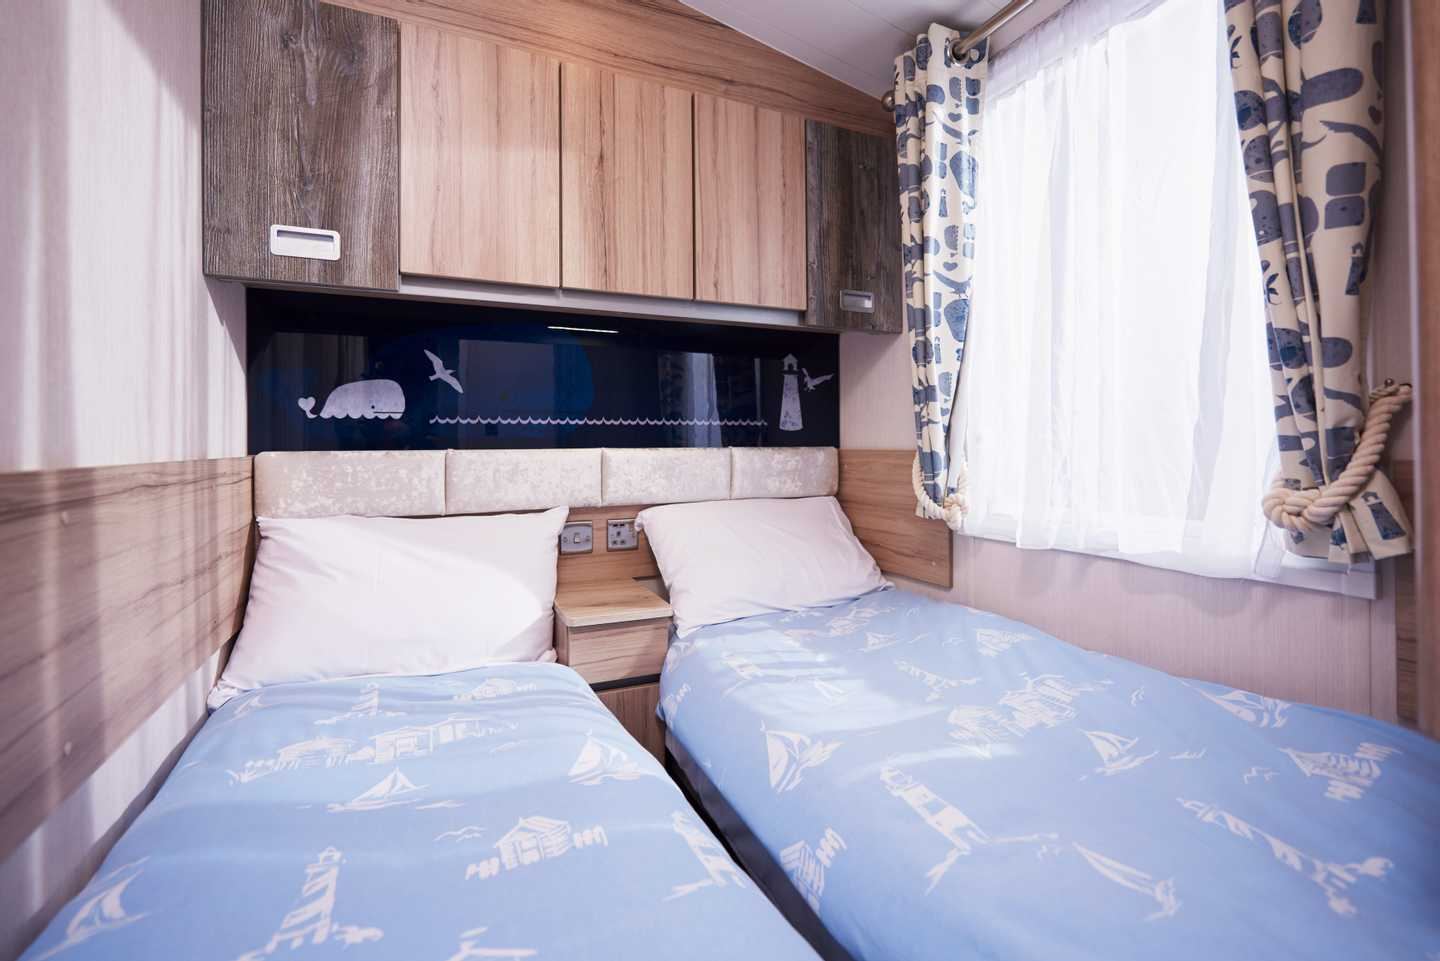 A Platinum caravan twin bedroom with 2 single beds and a bedside cabinet